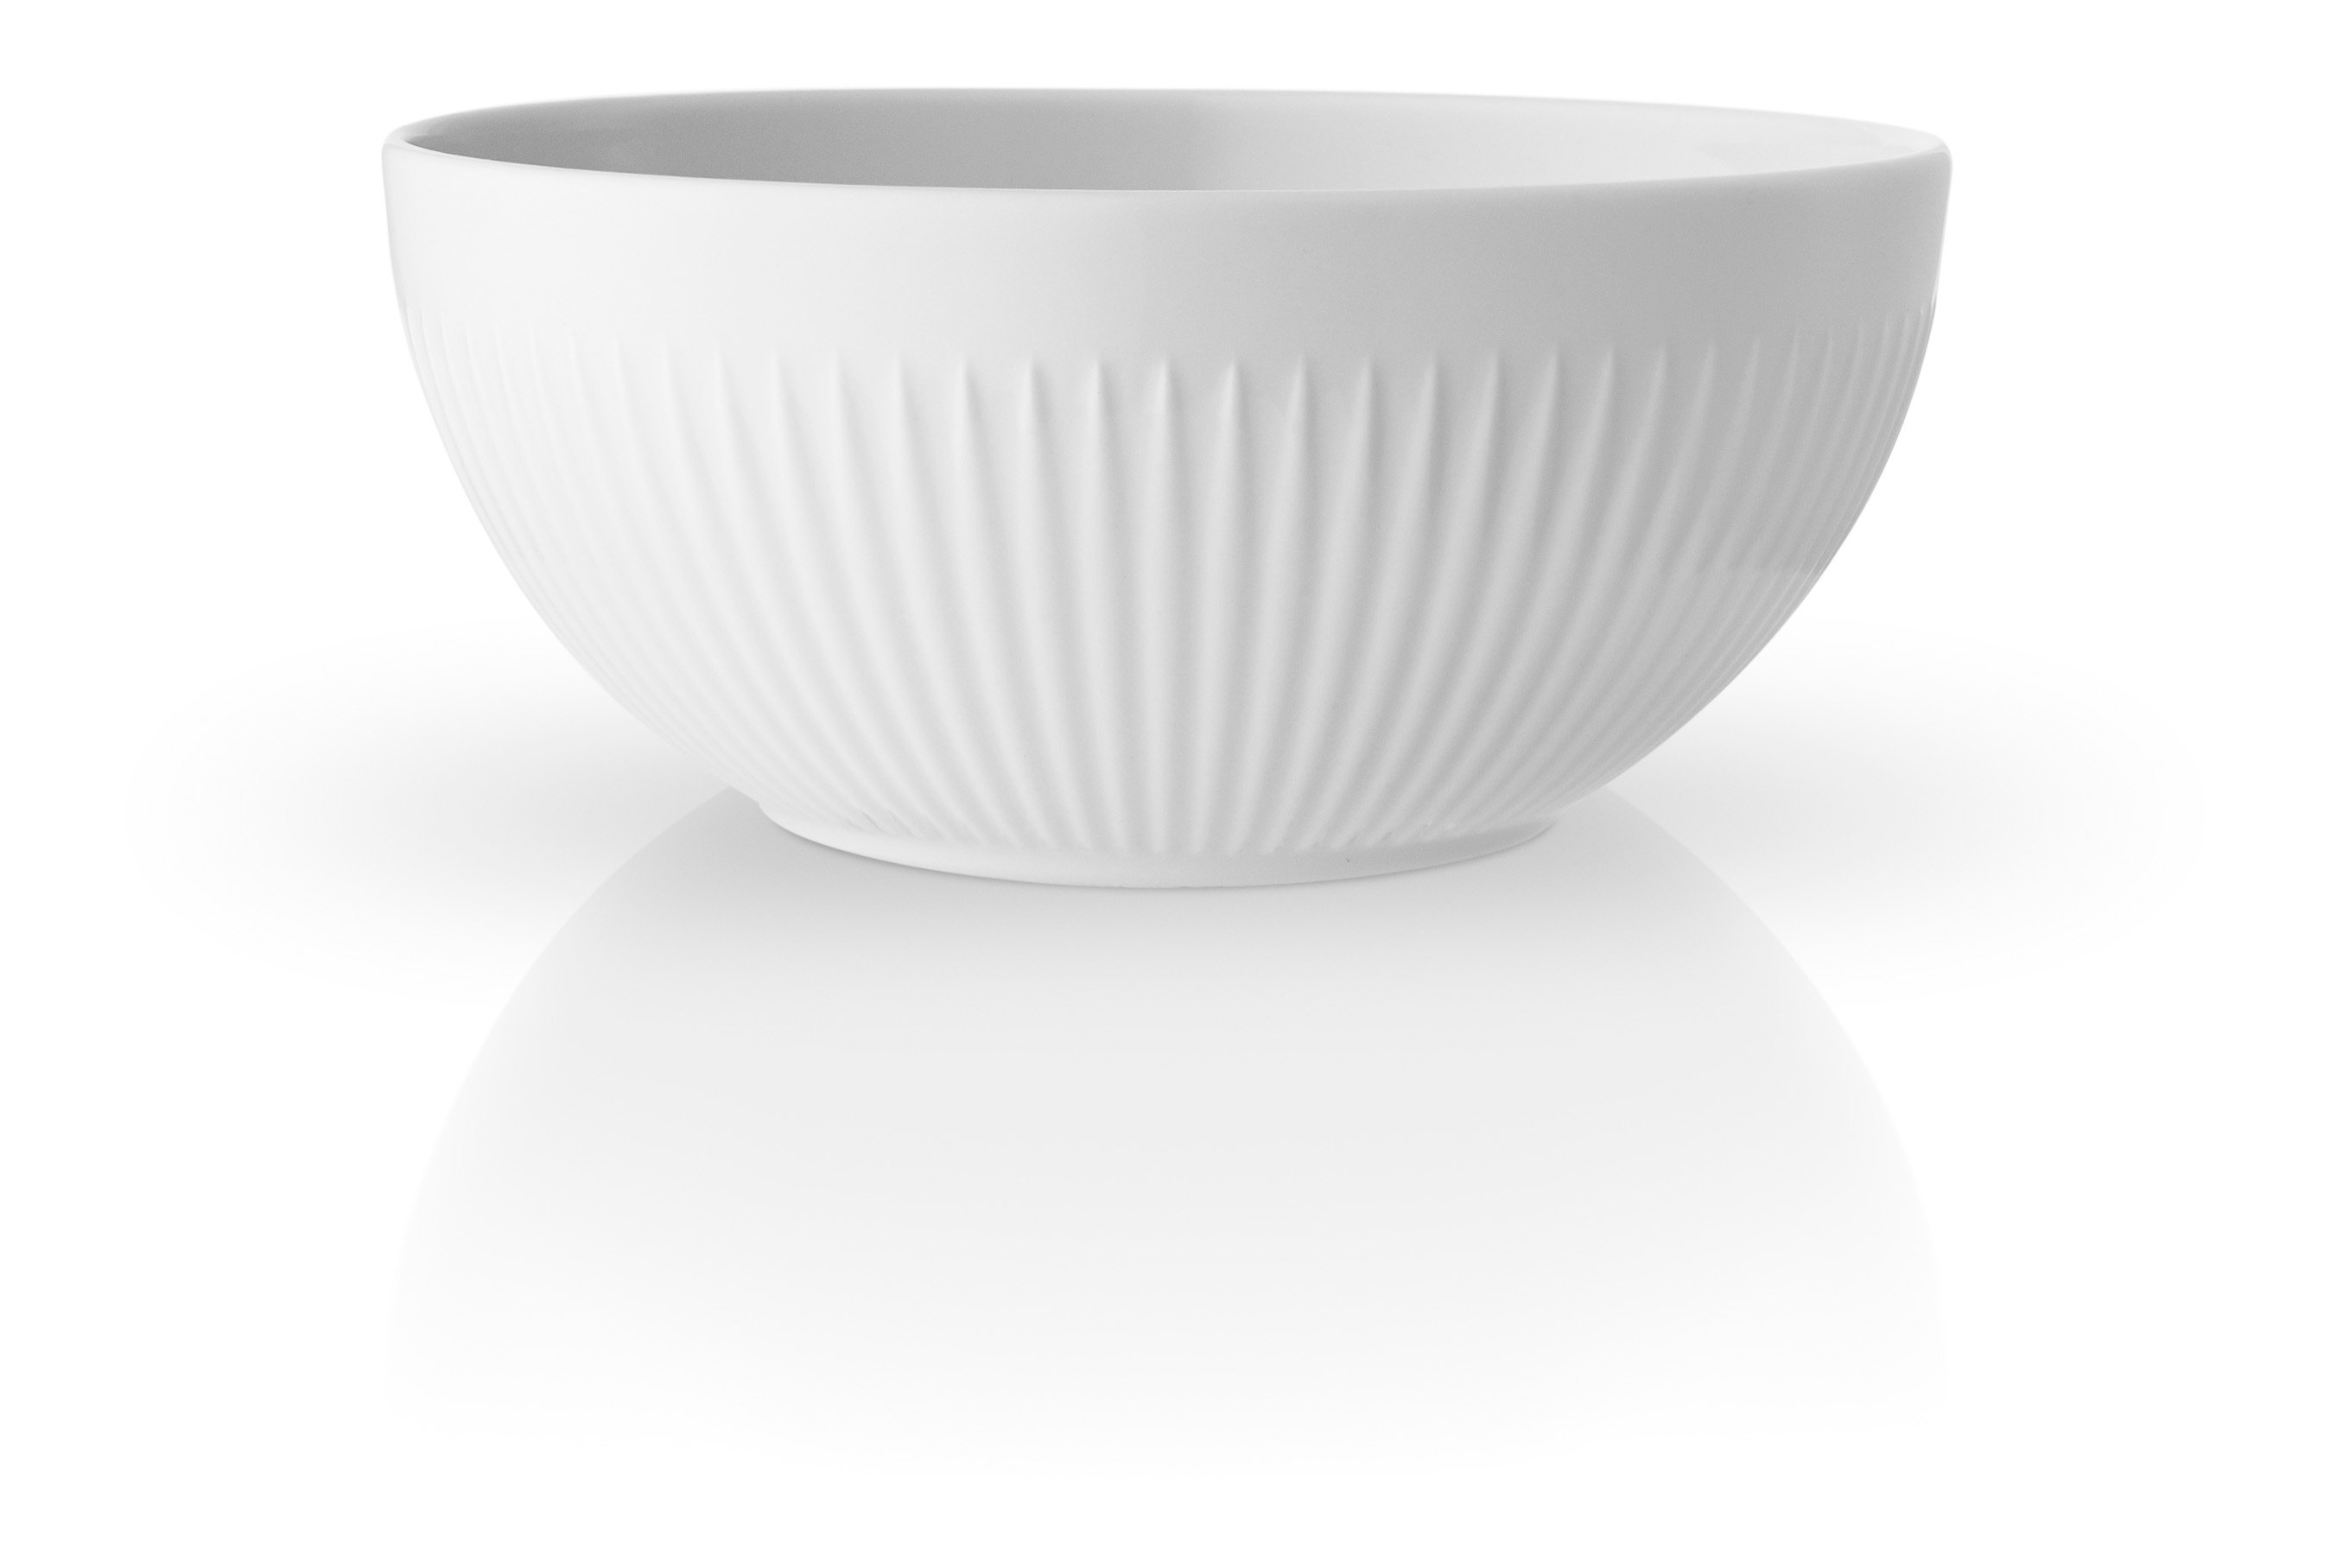 Eva Trio - Legio Nova Bowl 0,5 L 2018 - Small (887284)